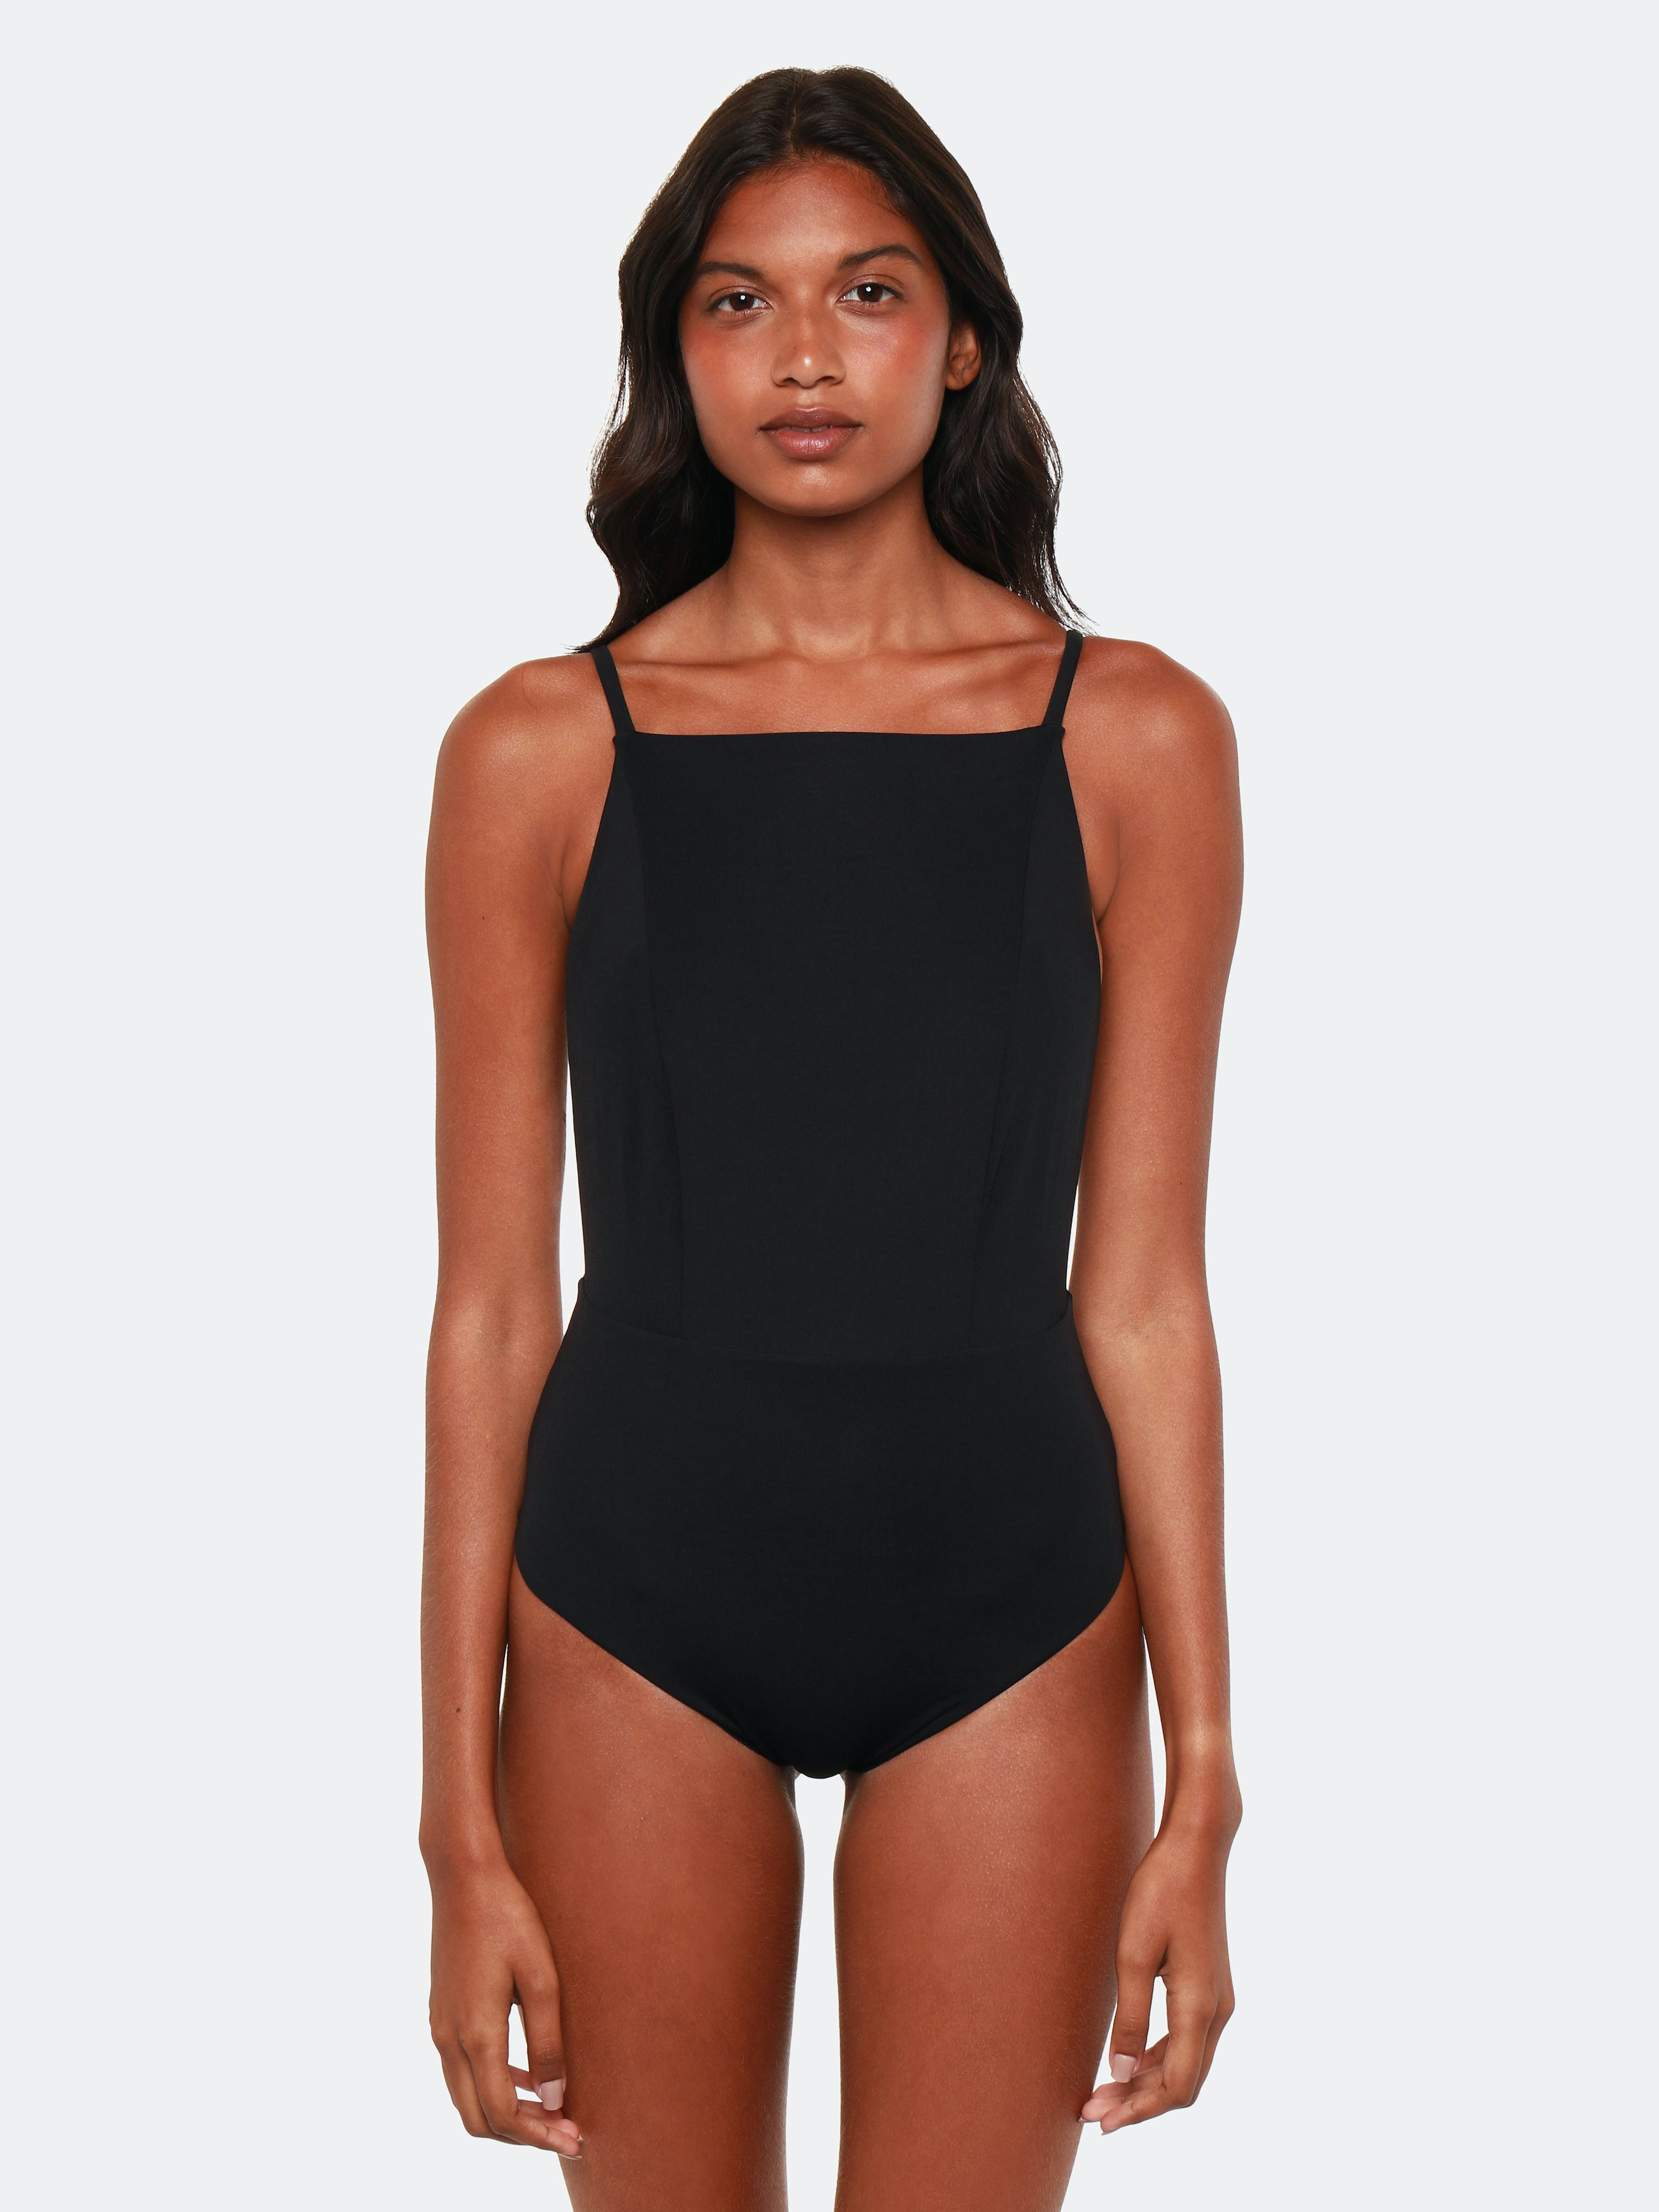 Bromelia Swimwear Rafaela One-piece In Black